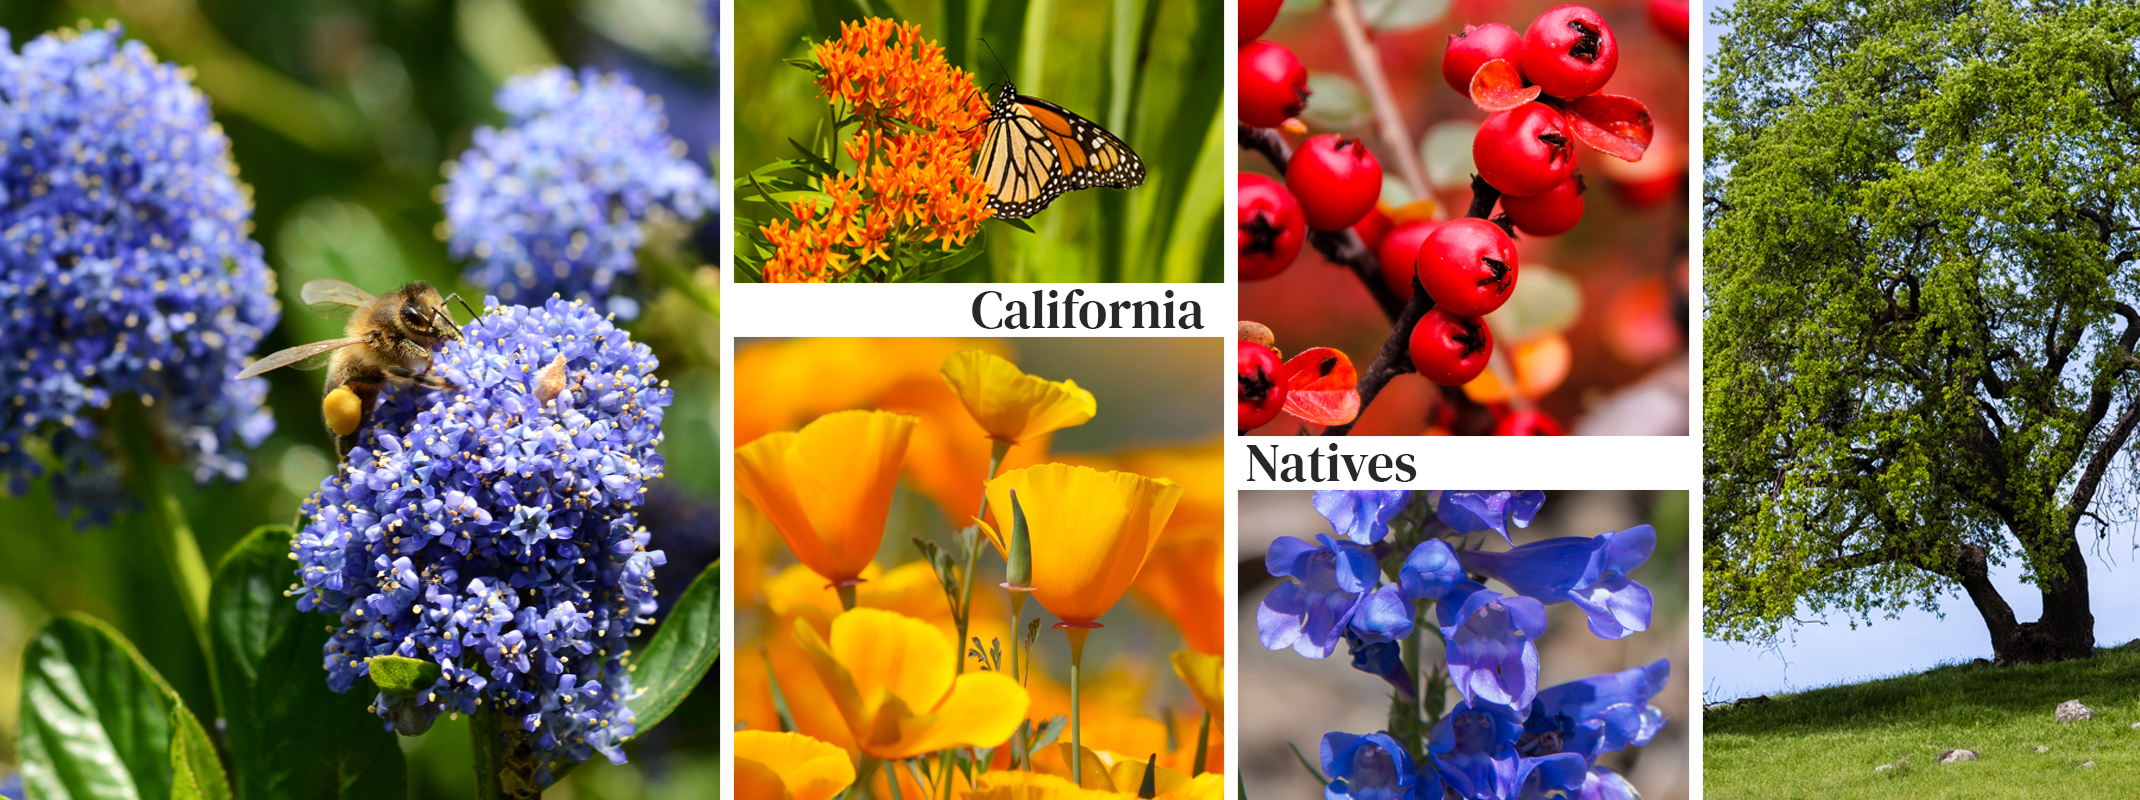 California Natives with celosia and a pollinator bee, Milkweed with a Monarch Butterfly, California Poppy, Penstemon, Toyon and California Oak Tree